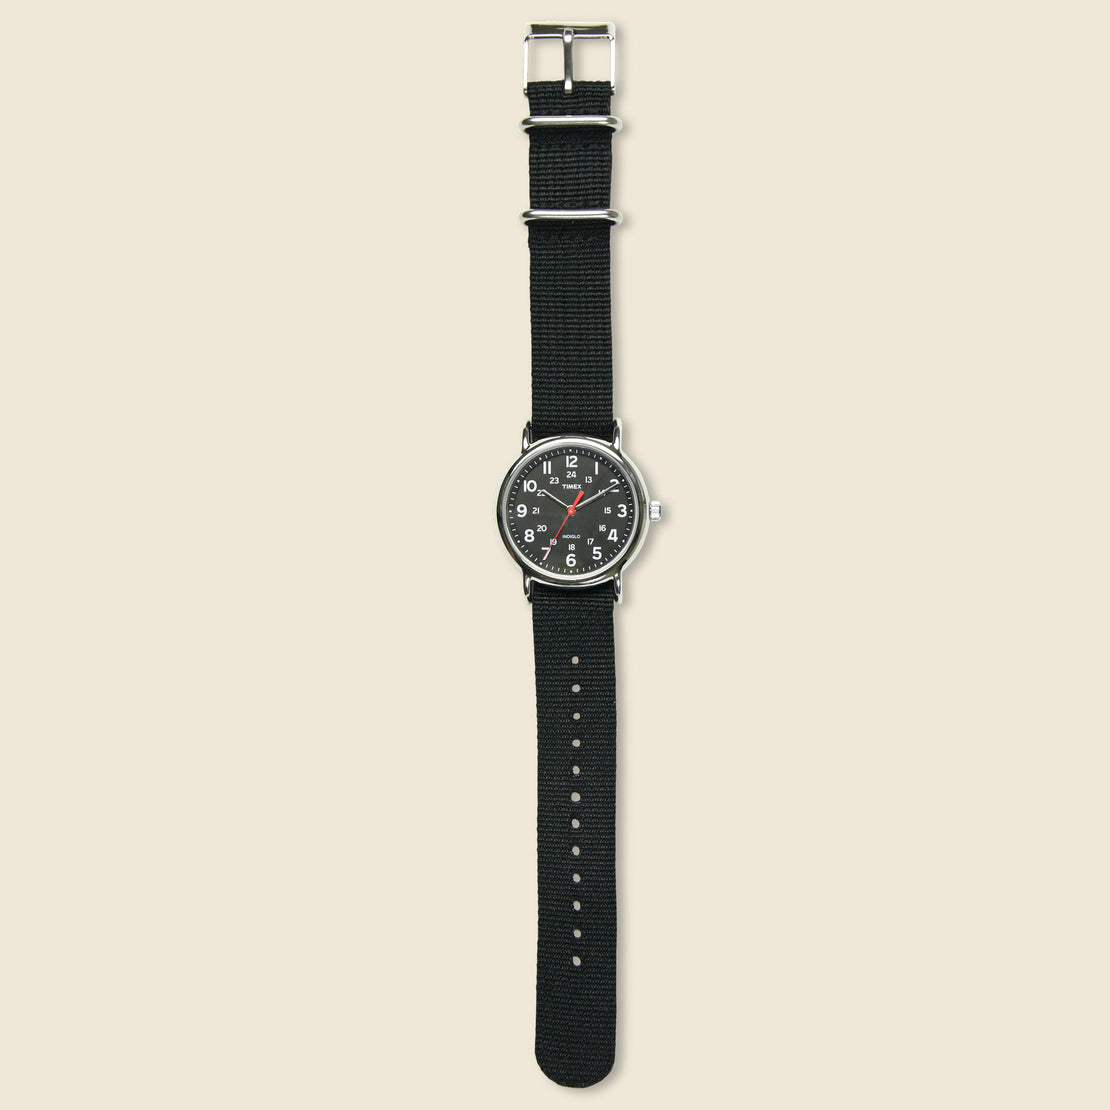 Weekender Watch - Black - Timex - STAG Provisions - Accessories - Watches